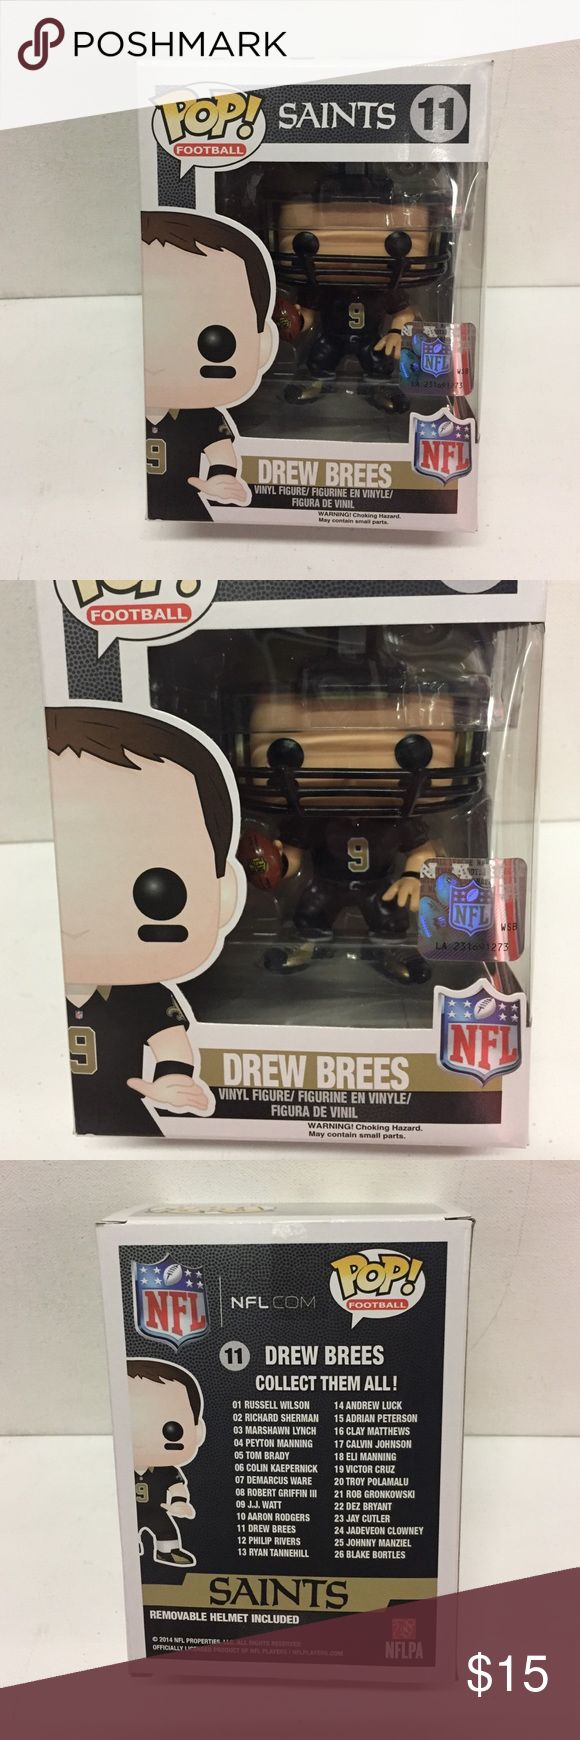 Funko pop NFL Saints Drew Brees vinyl figure Funko pop NFL Saints Drew Brees vinyl figure new in good condition funko Other